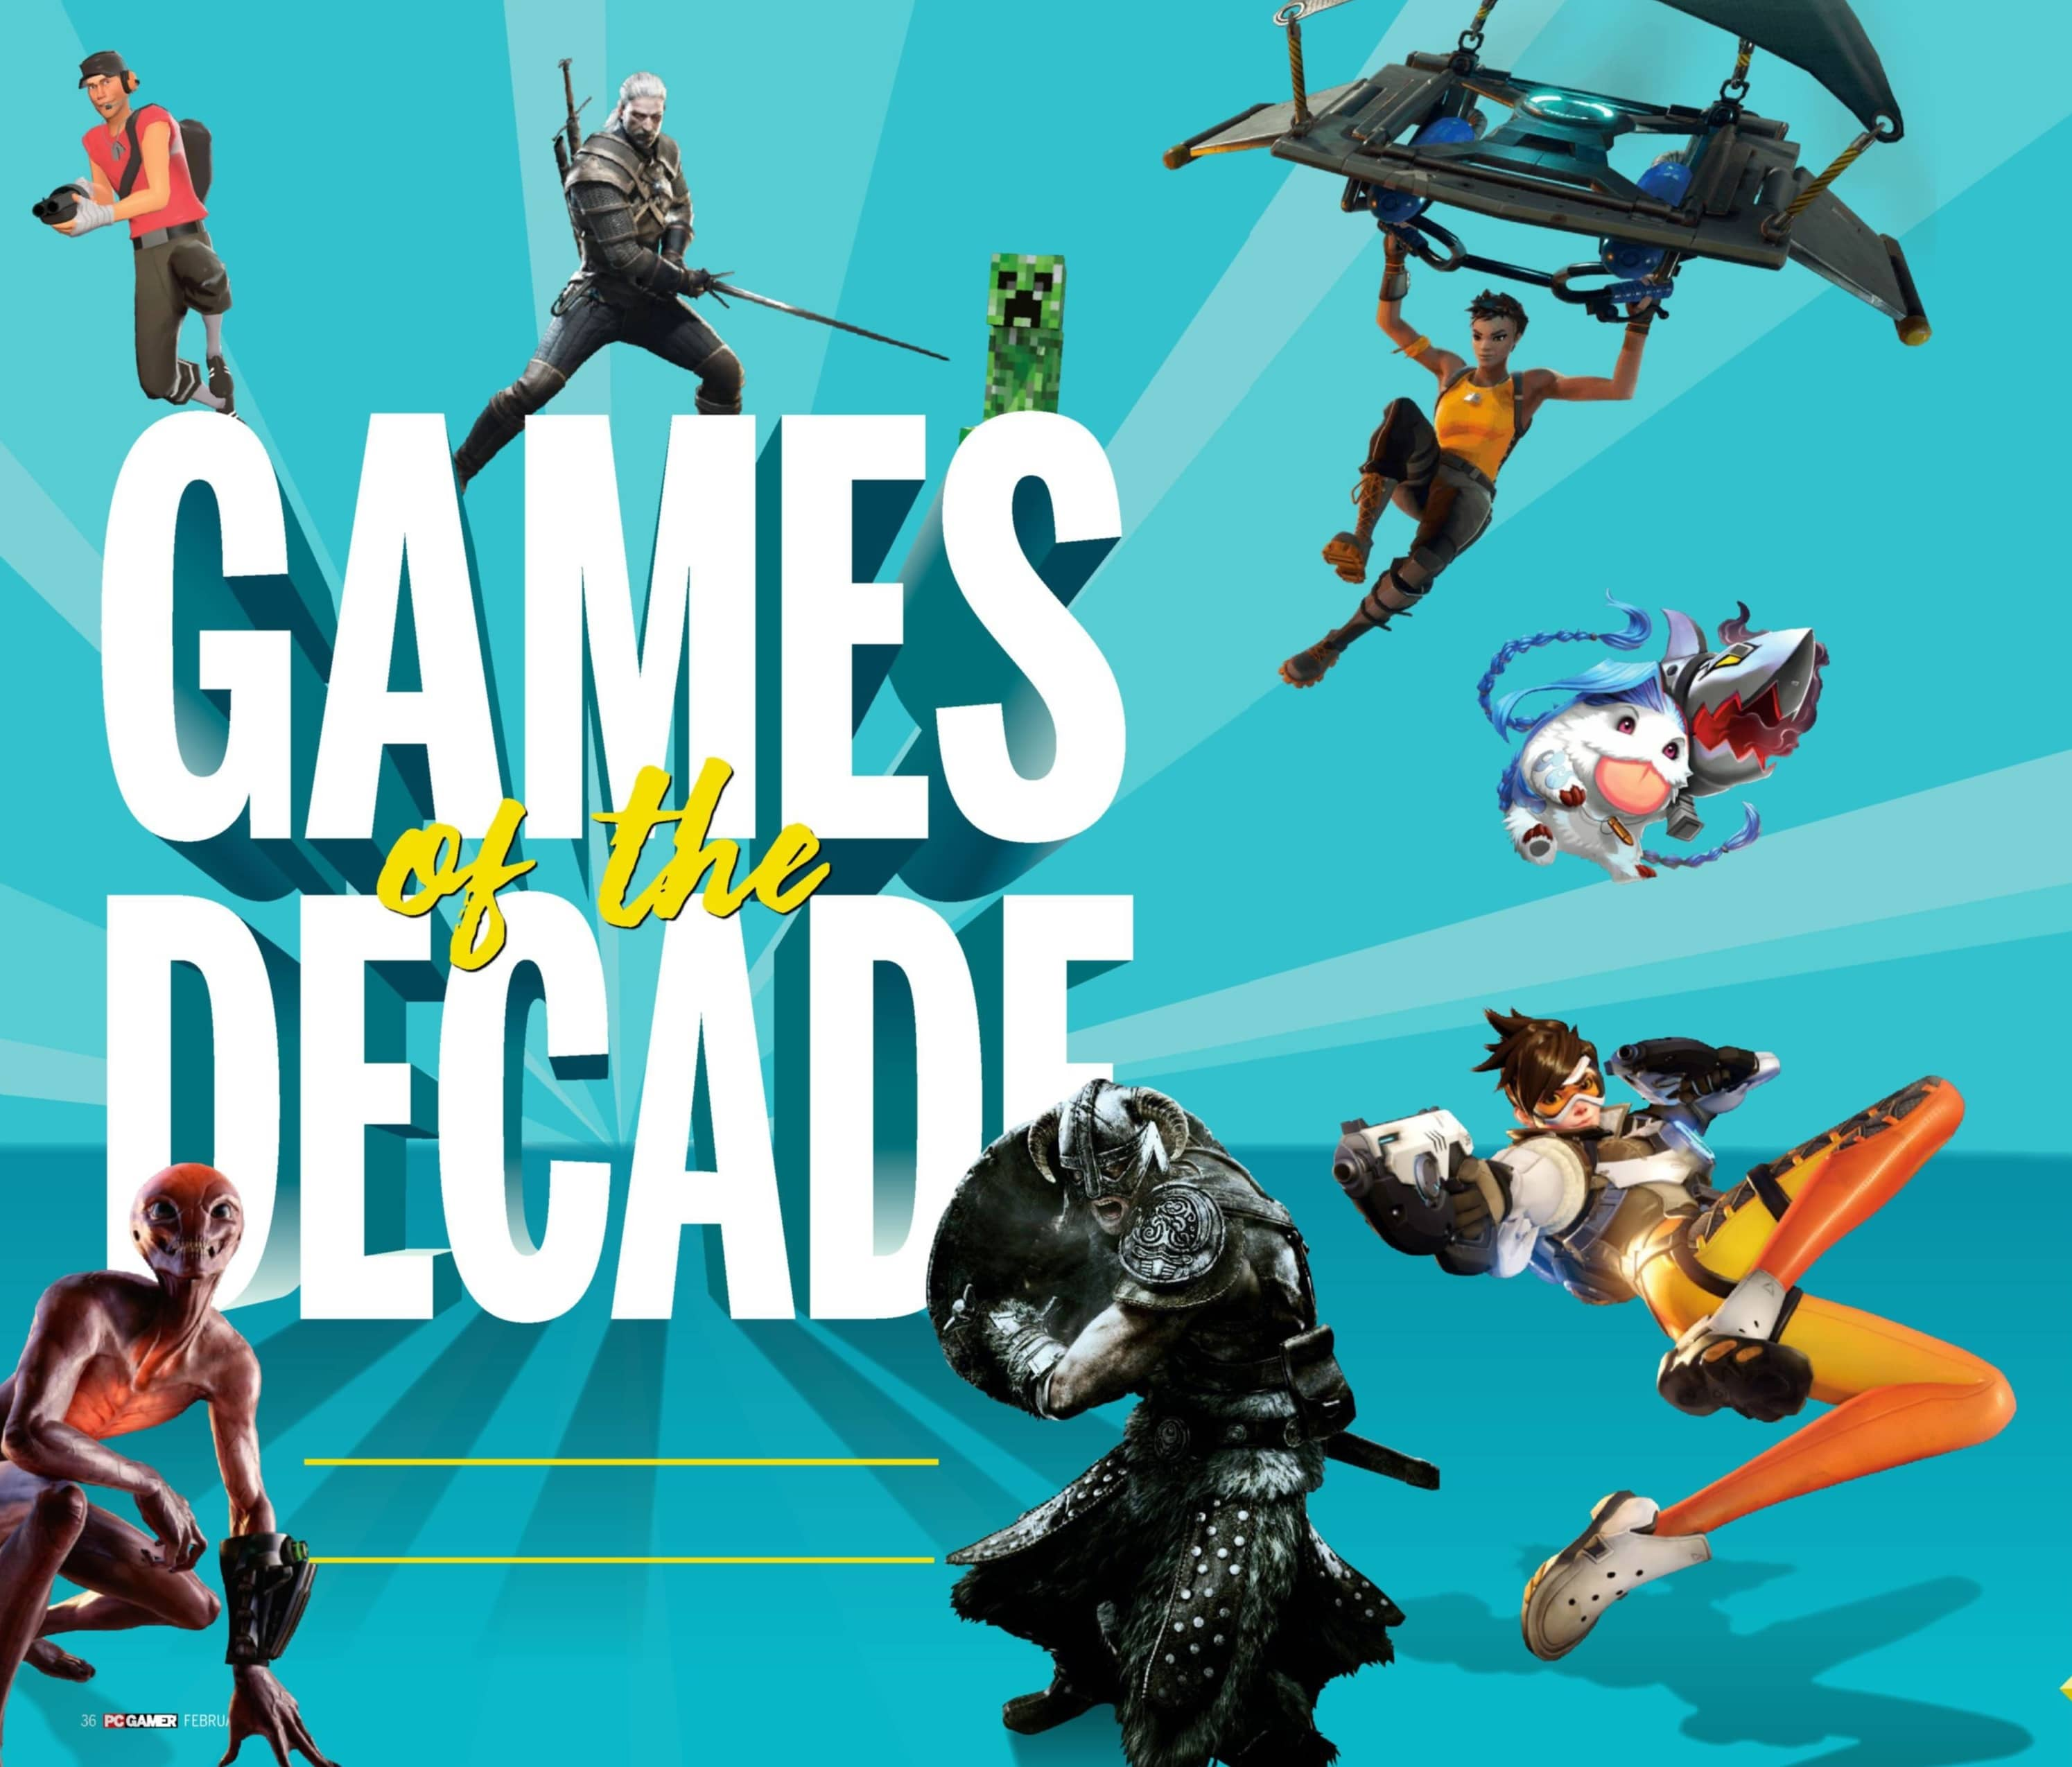 GAMES of the DECADE